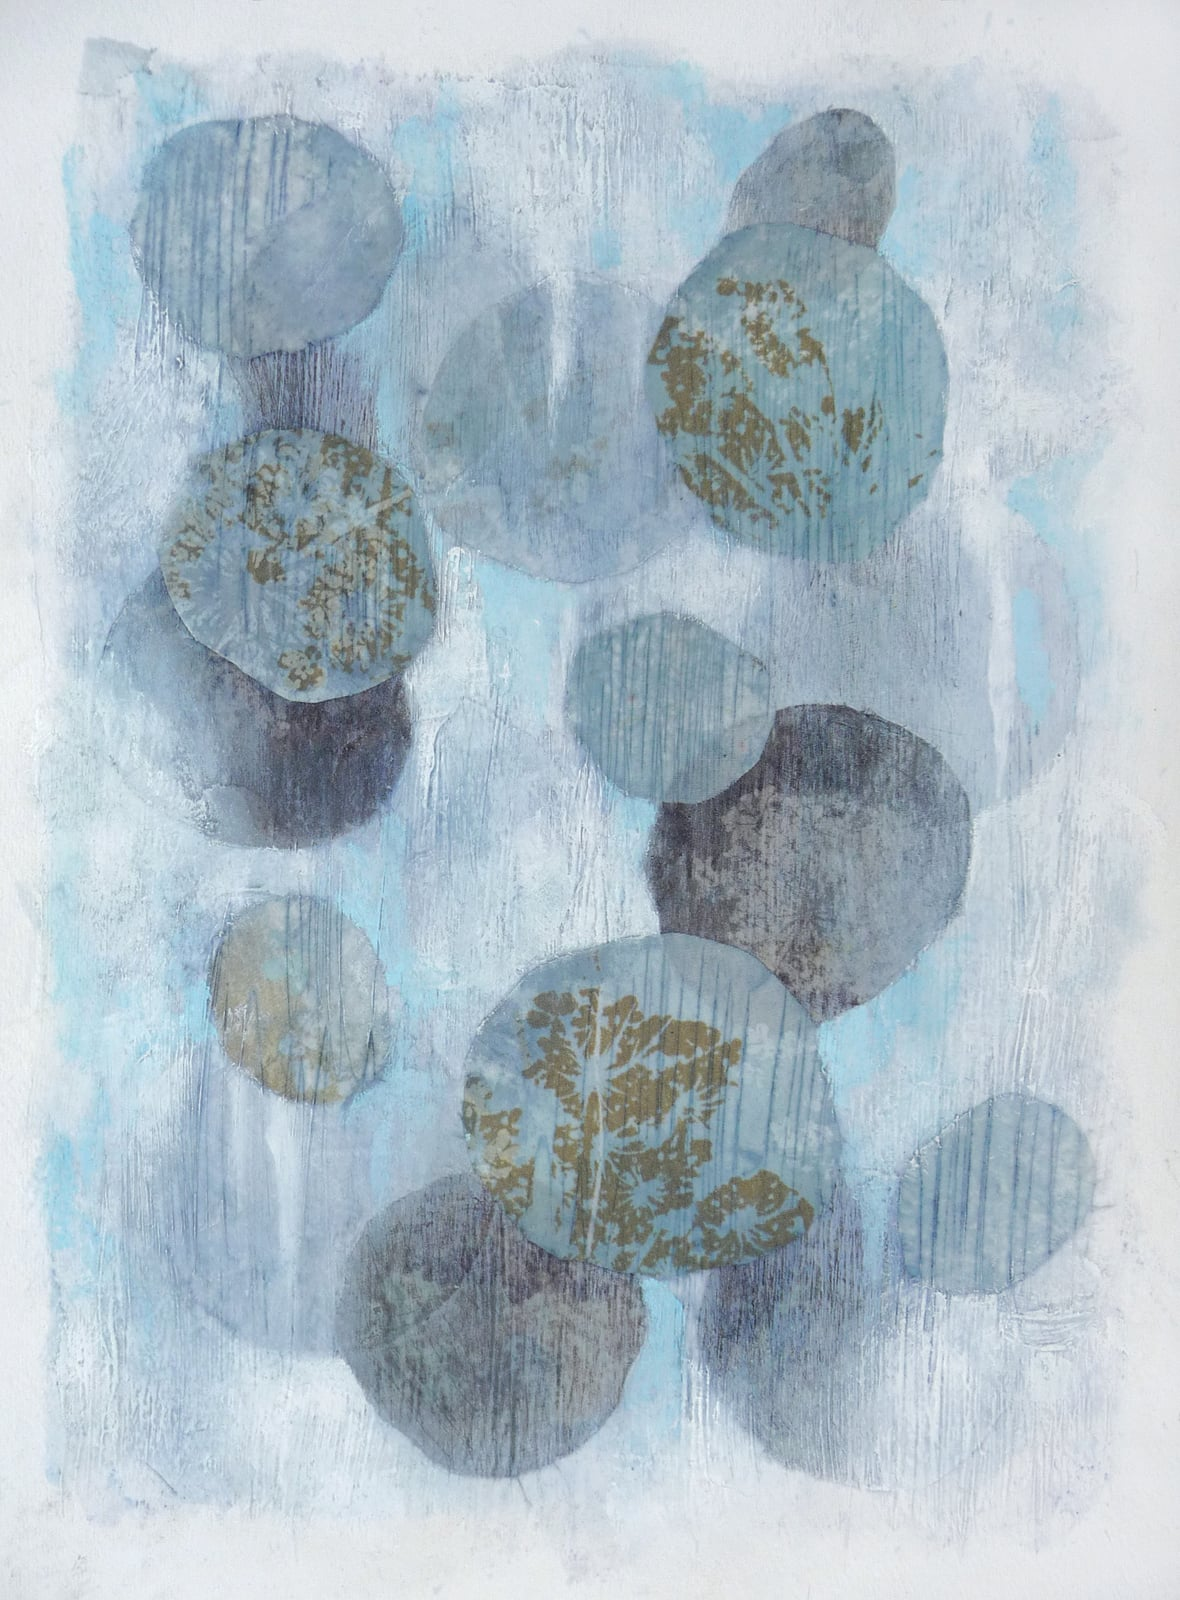 Untitled V , 2015. Mixed media on paper. 15 x 11 inches (38.1 x 27.9 cm)